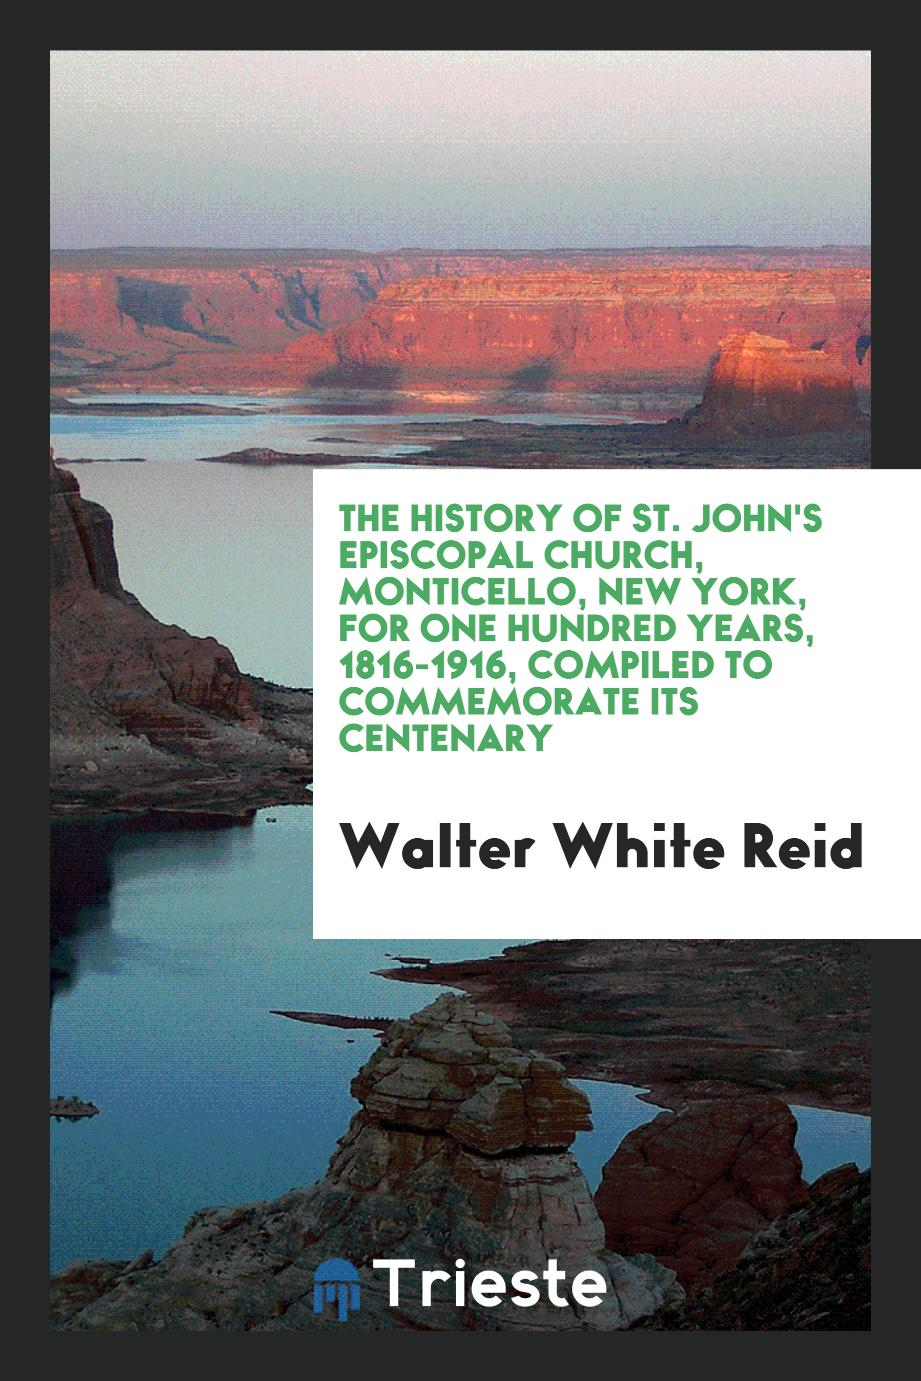 The history of St. John's Episcopal church, Monticello, New York, for one hundred years, 1816-1916, compiled to commemorate its centenary